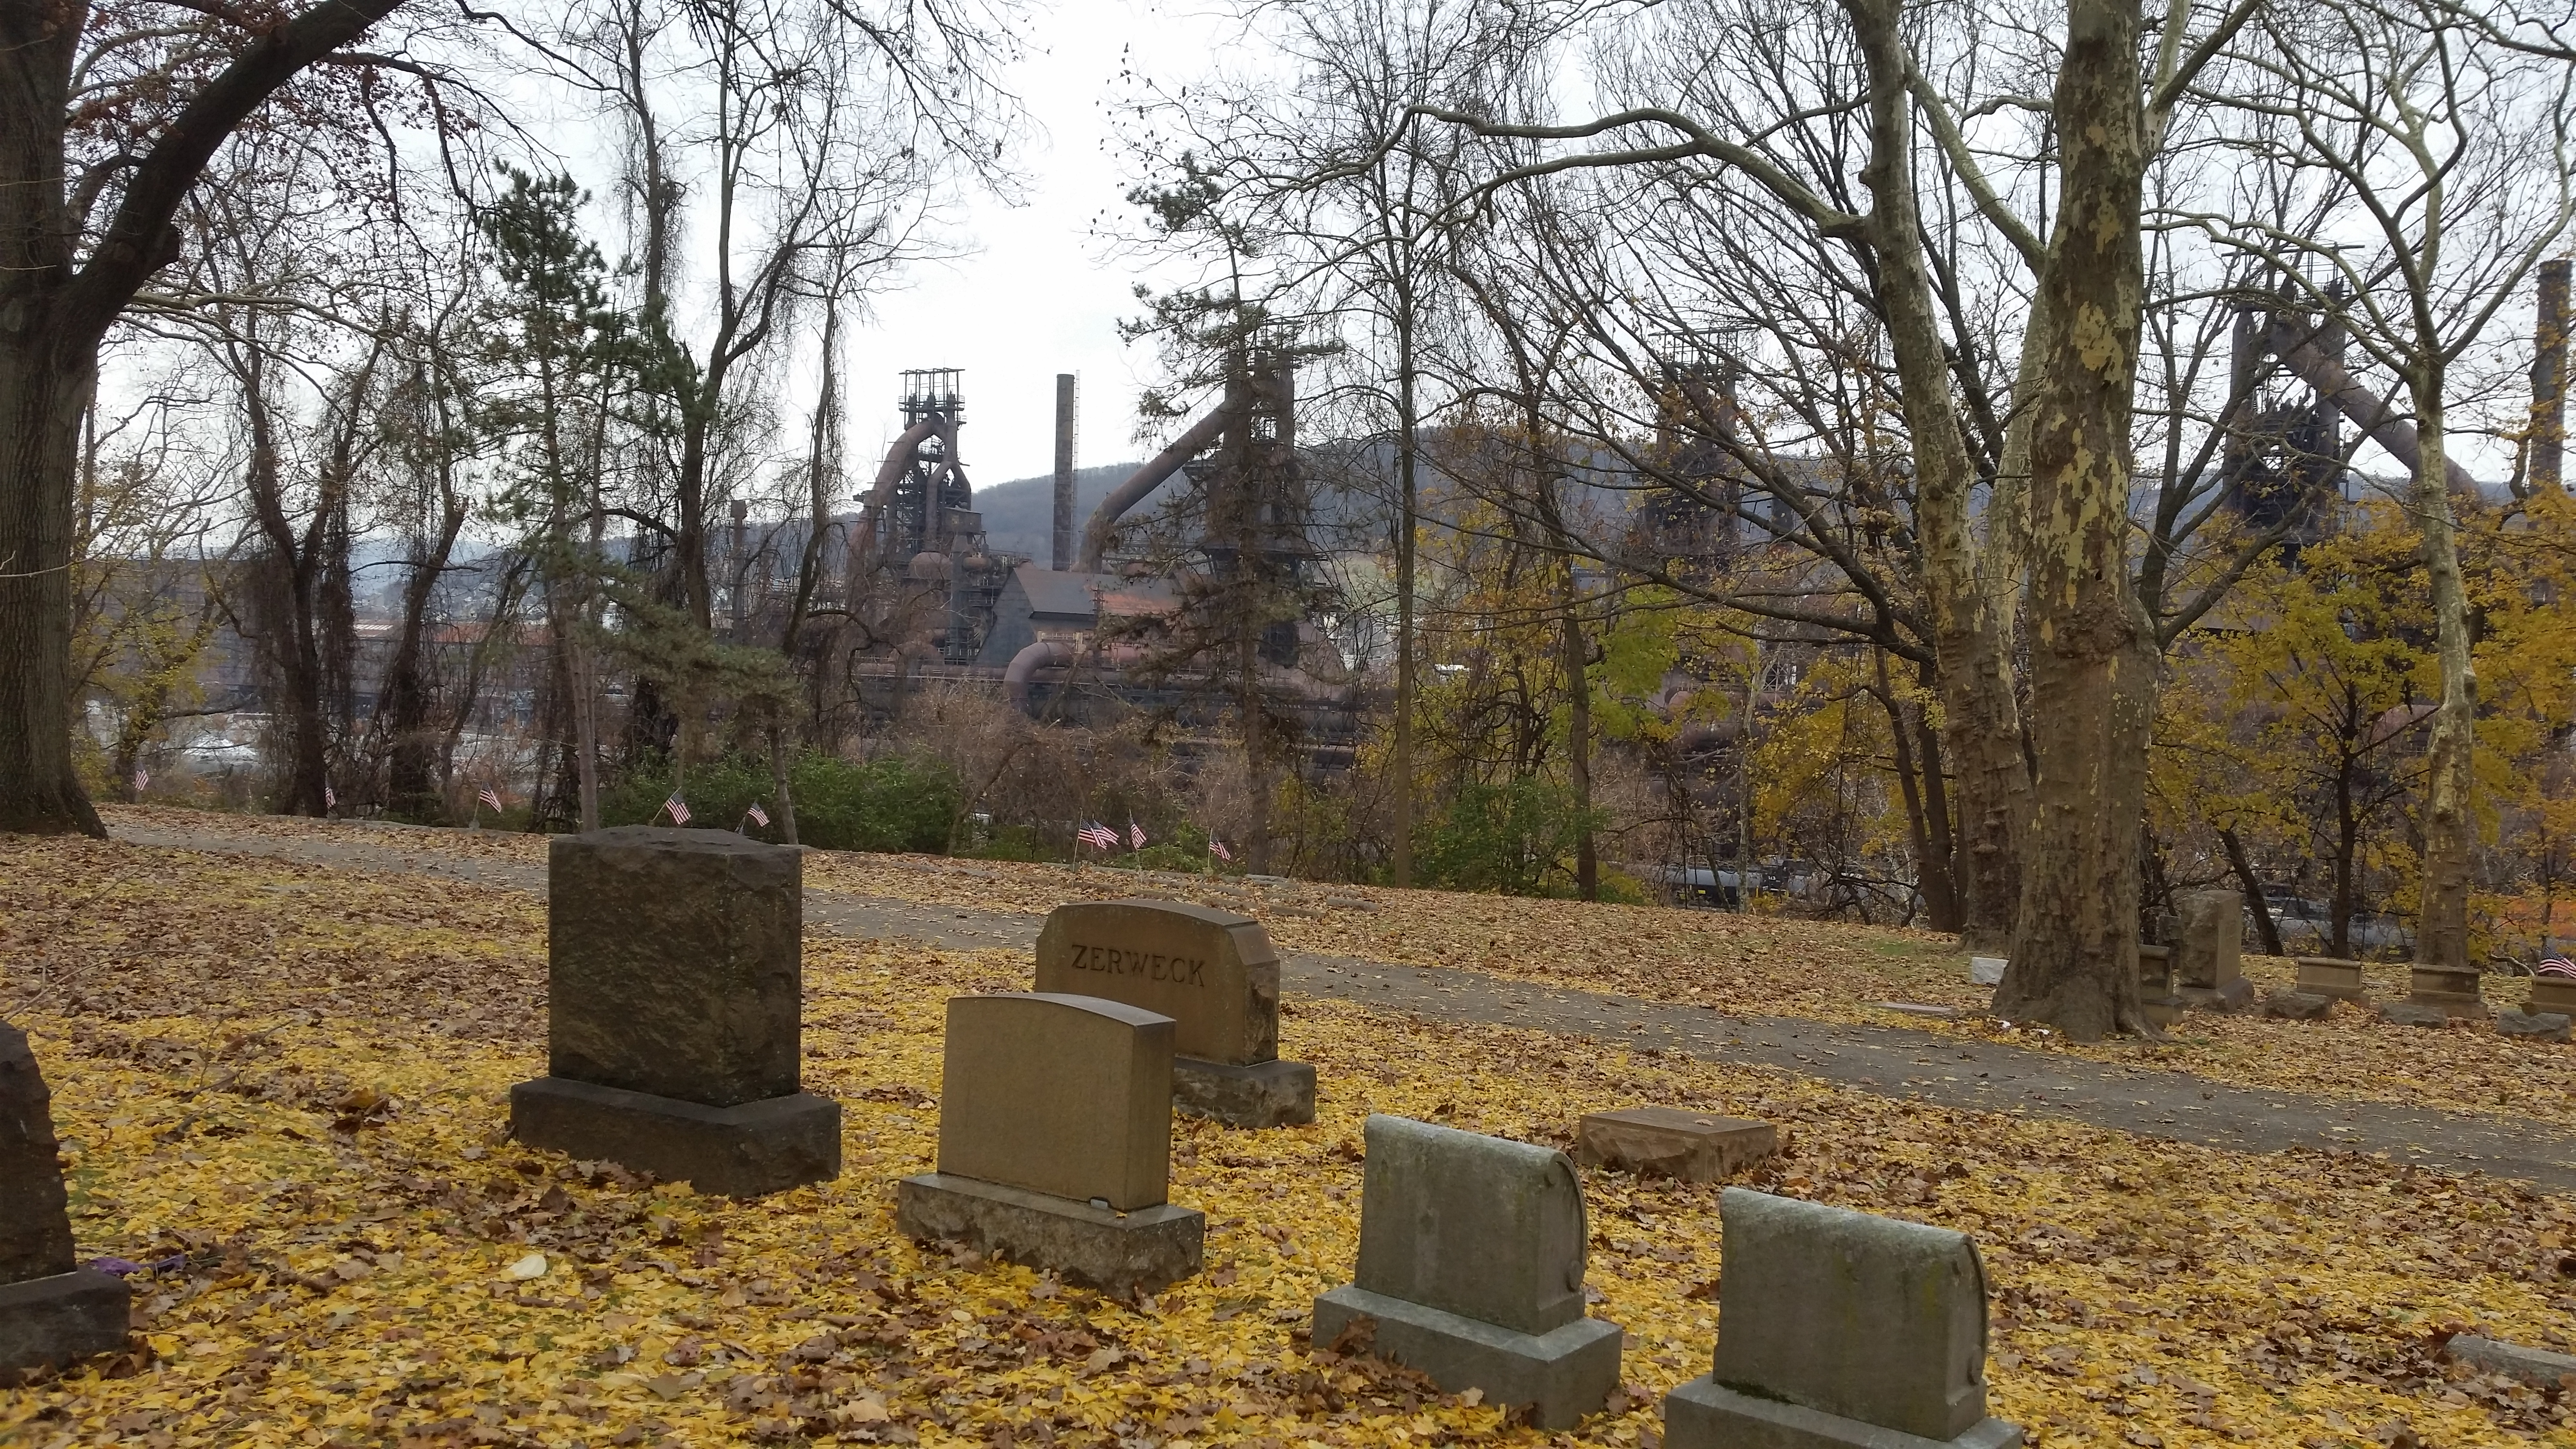 cemetery scene with industry in background